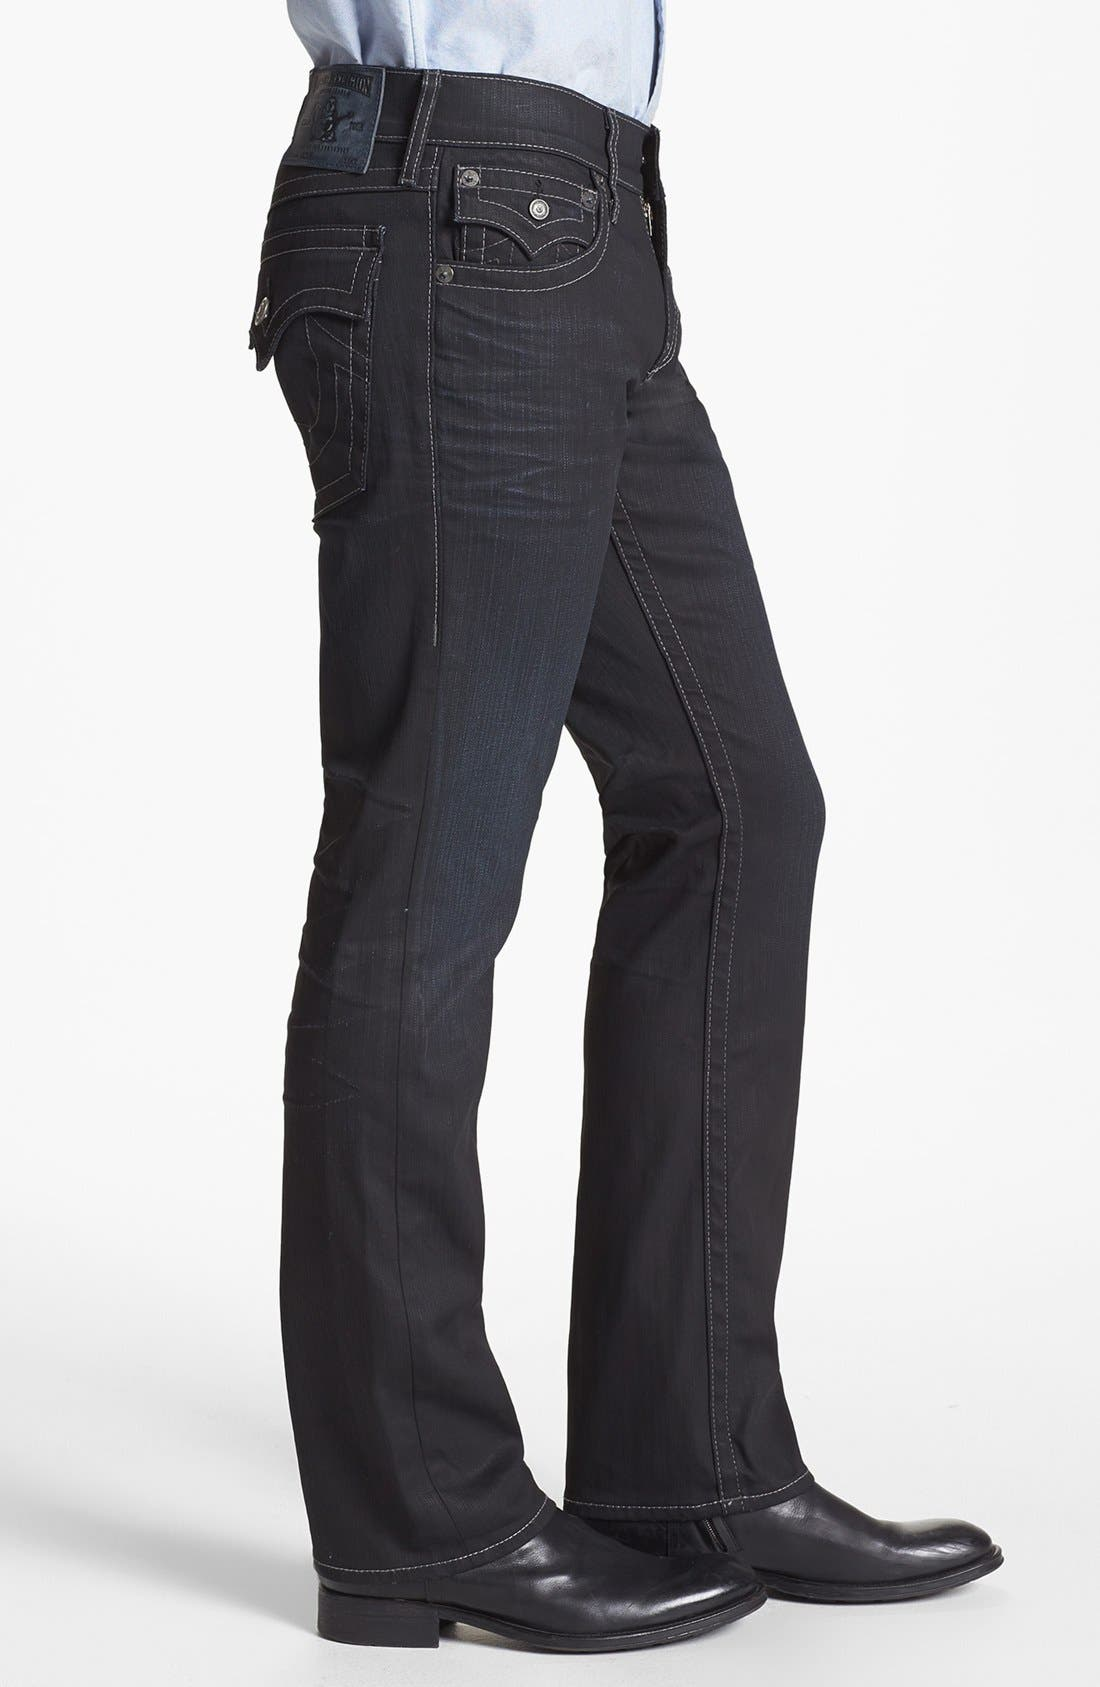 Alternate Image 3  - True Religion Brand Jeans 'Ricky' Coated Straight Leg Jeans (Gbd Black Rider)